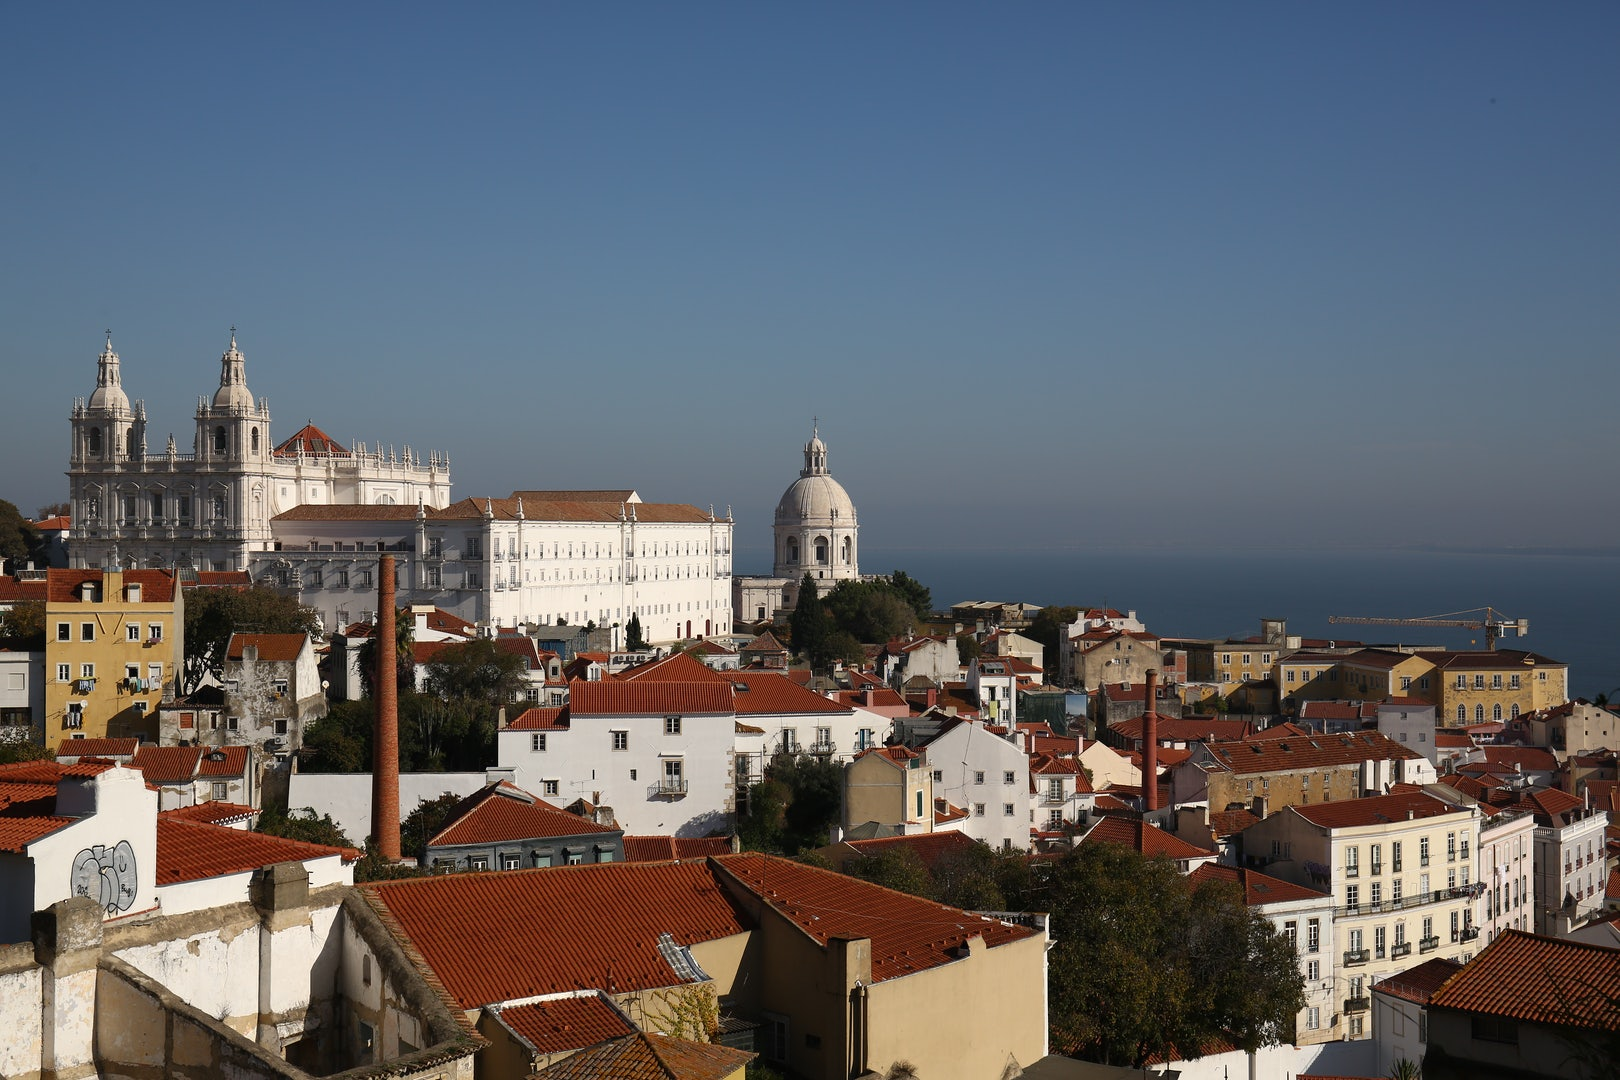 the Castelo de Sao Jorge and roofs of Lisbon